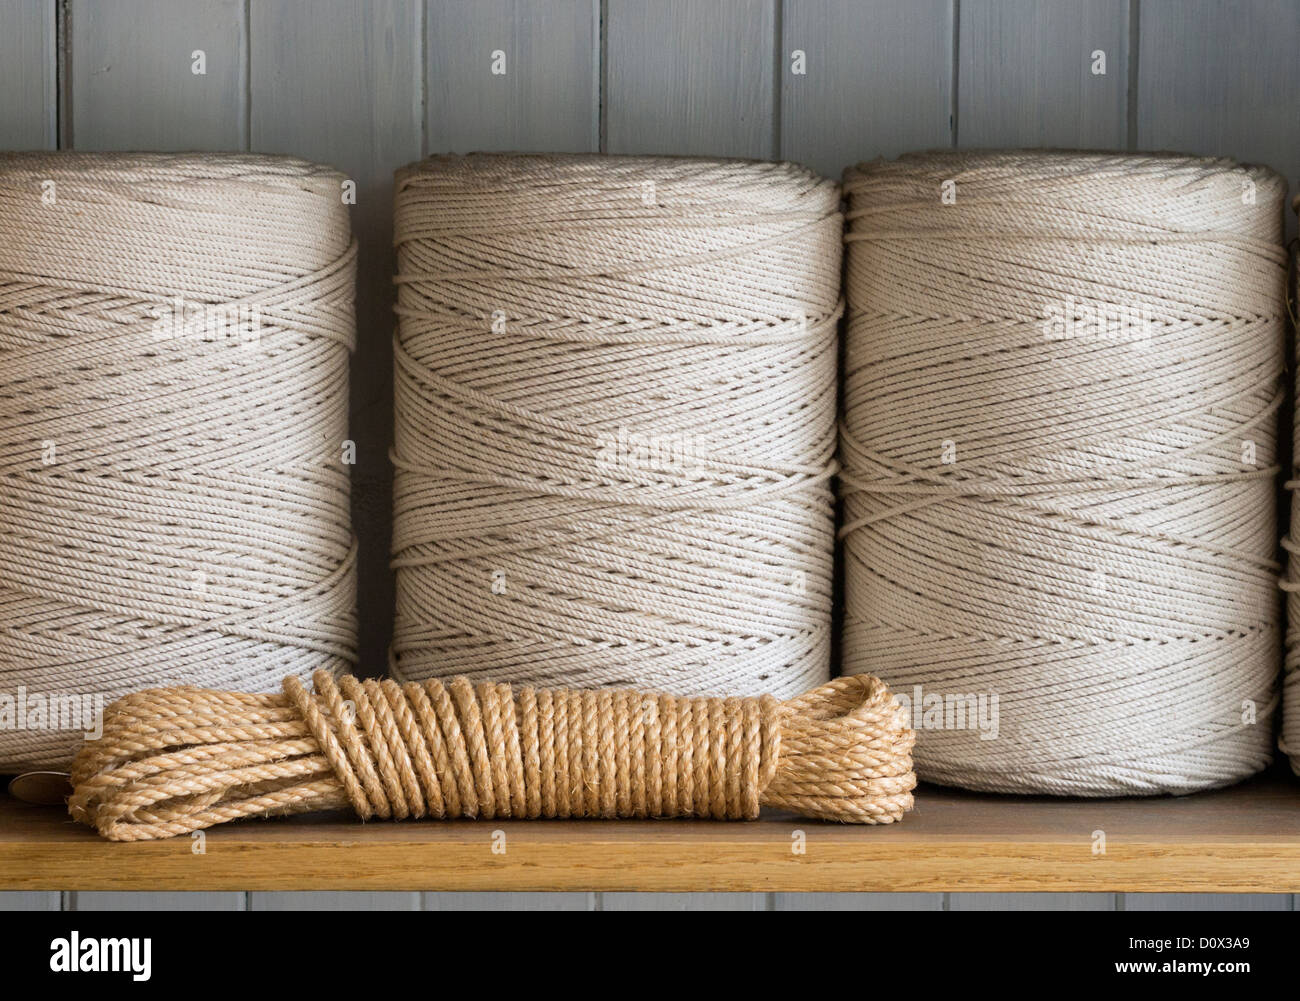 Three spools of cord and a bit of twine. A shelf of string. - Stock Image